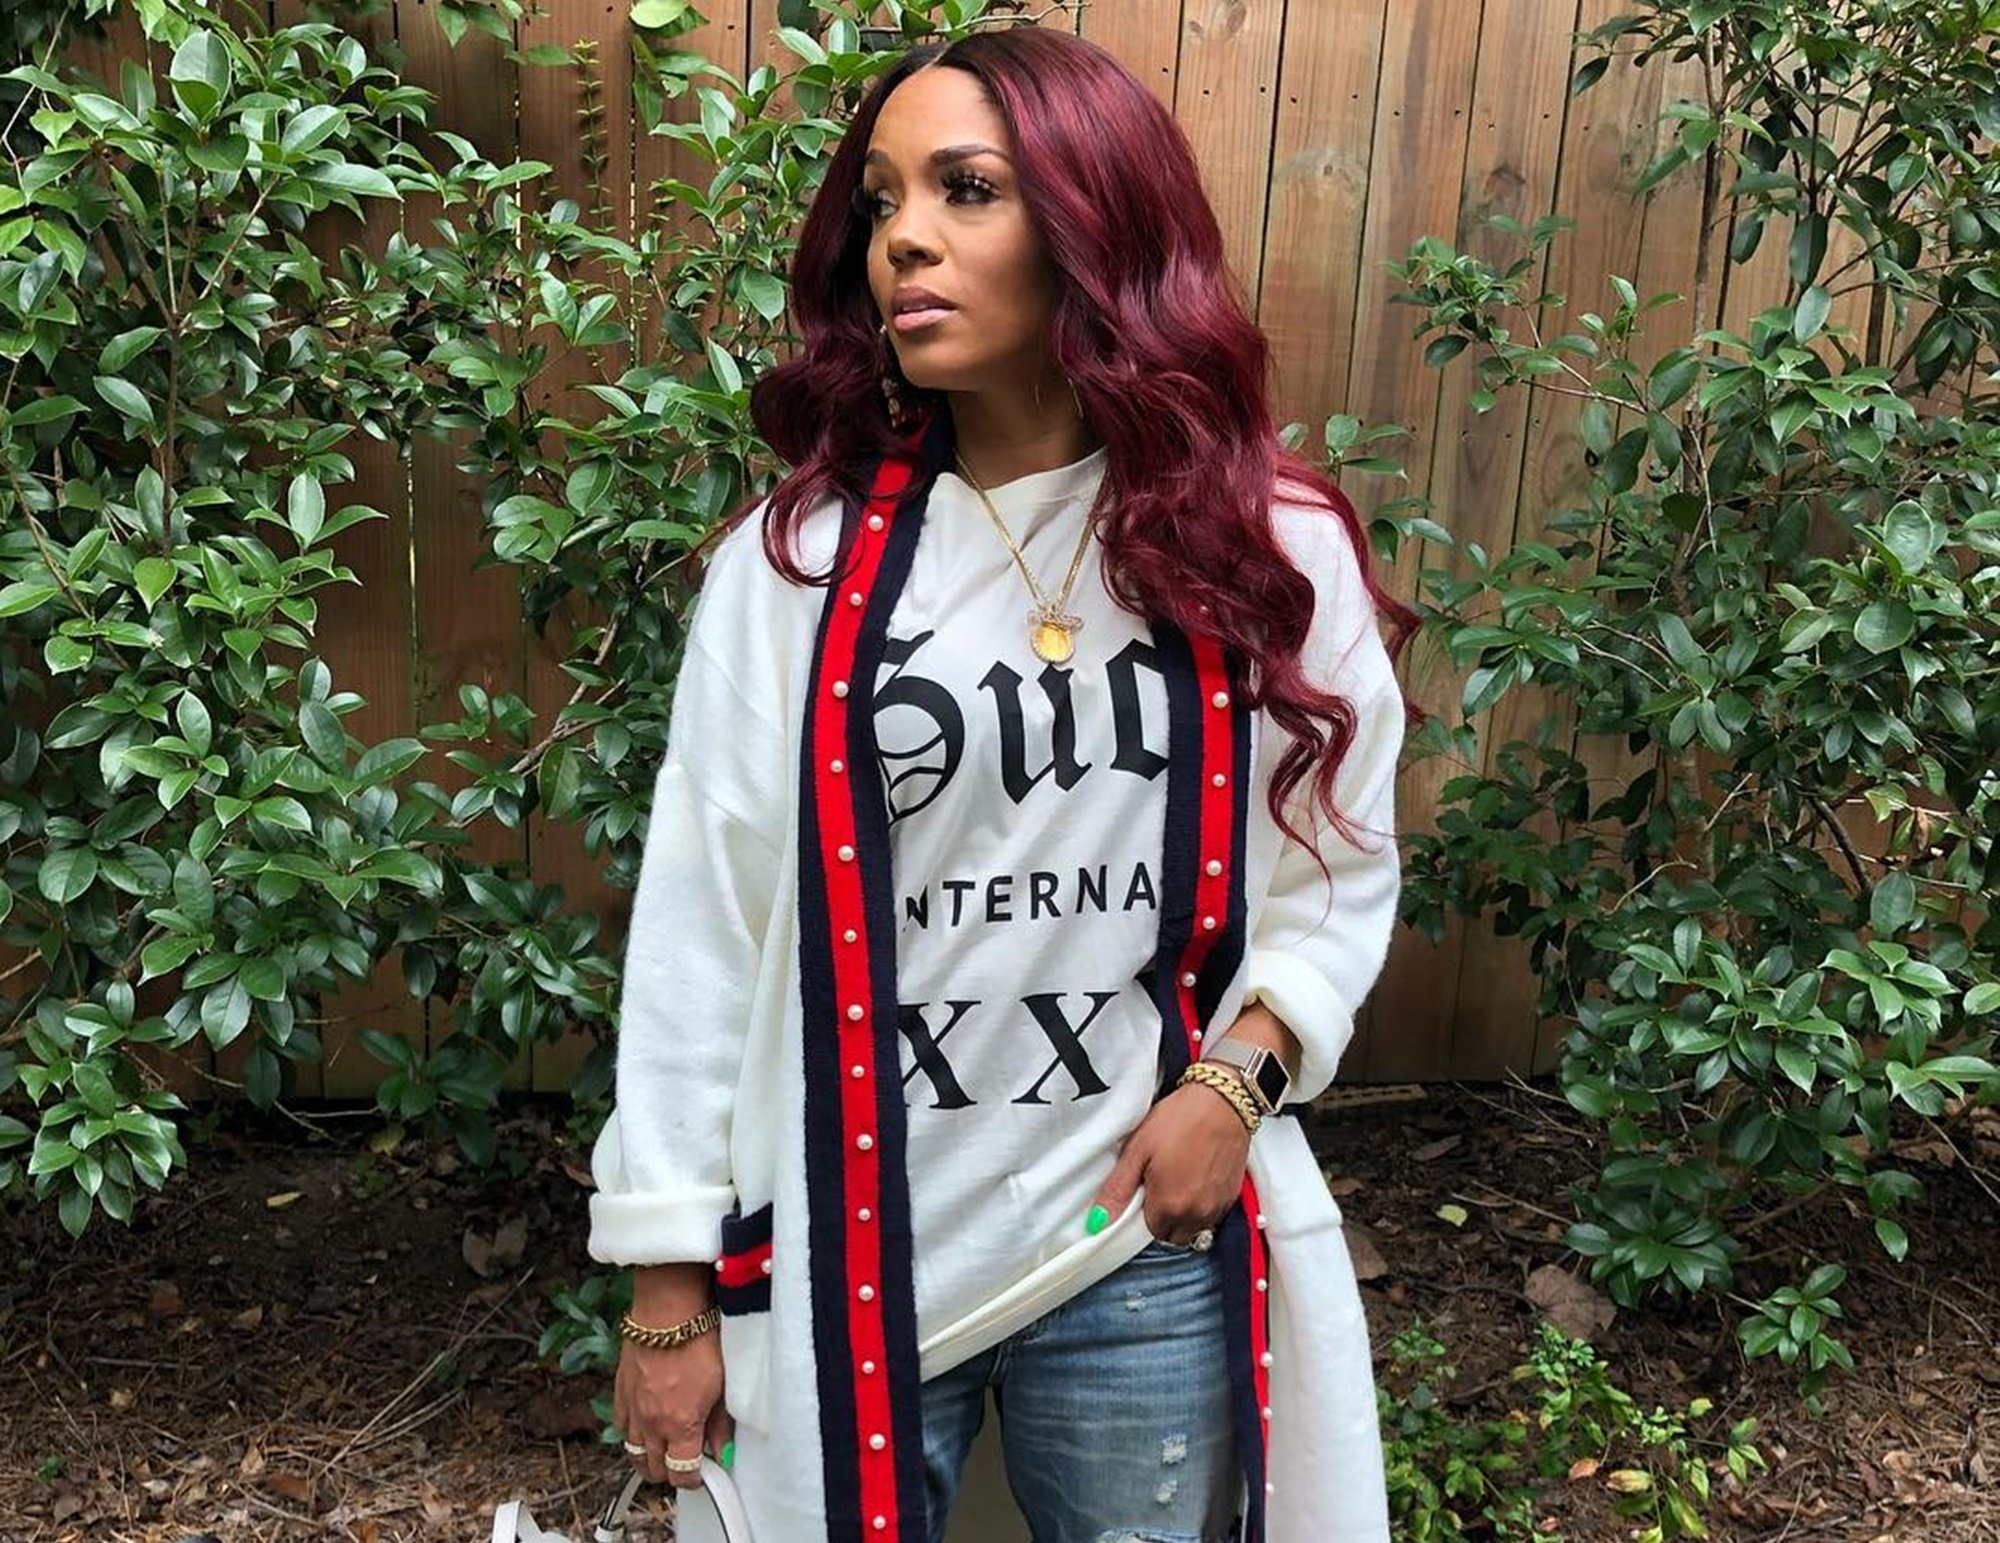 Rasheeda Frost Invites Fans At Her Pressed Boutique - Check Out Her Videos From The Store